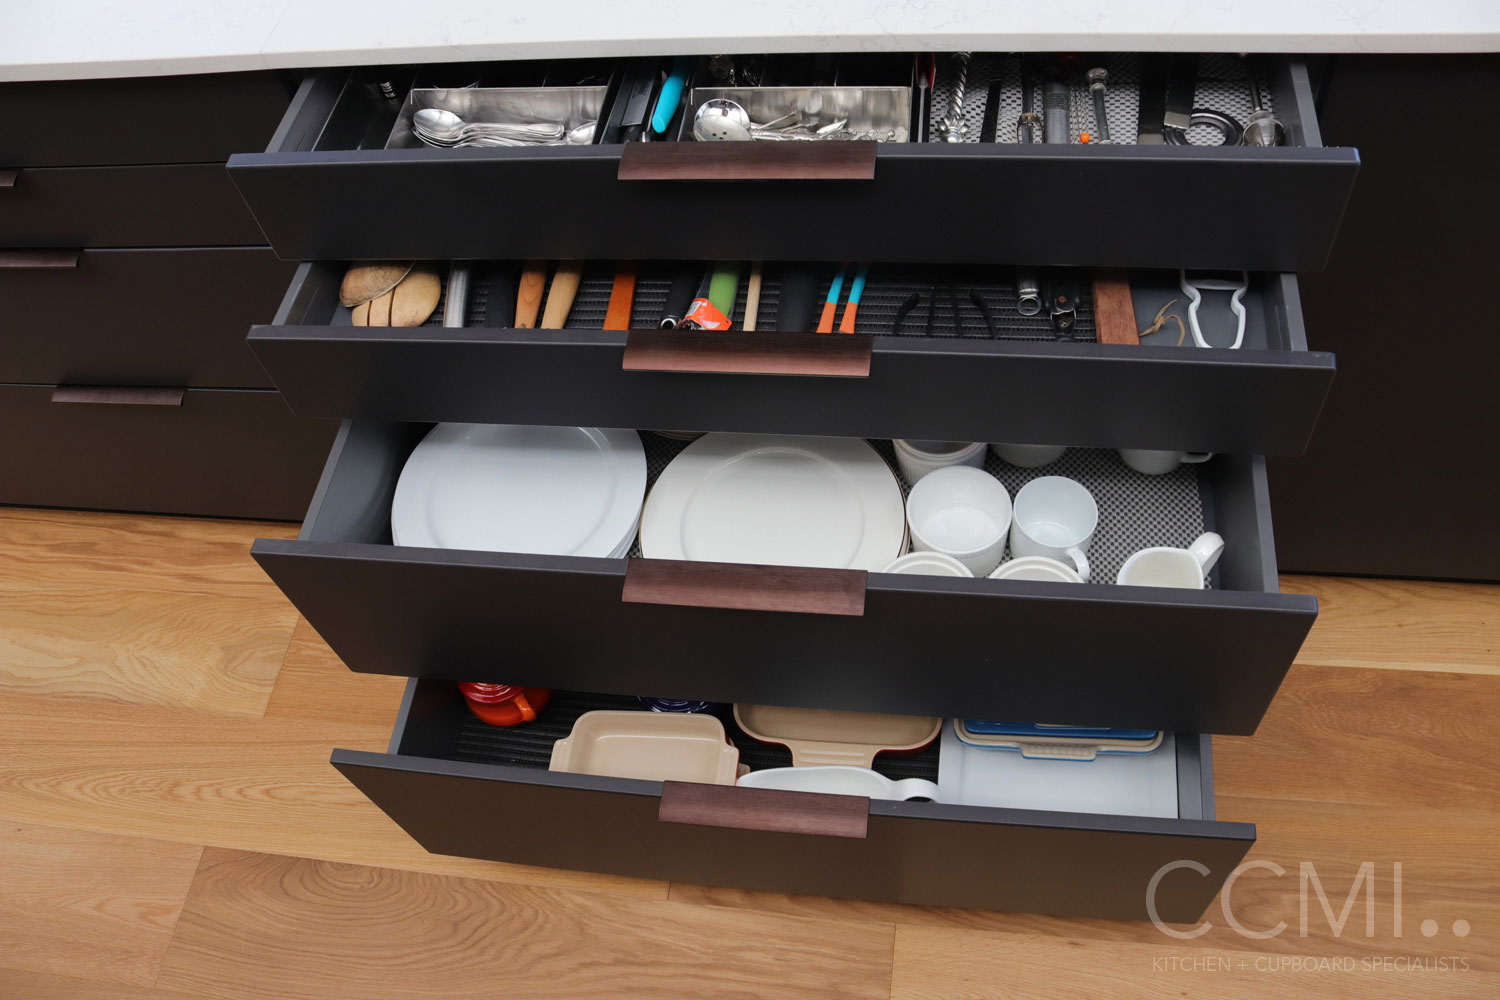 drawers in the kitchen island provide storage for utensils, cutlery, and crockery